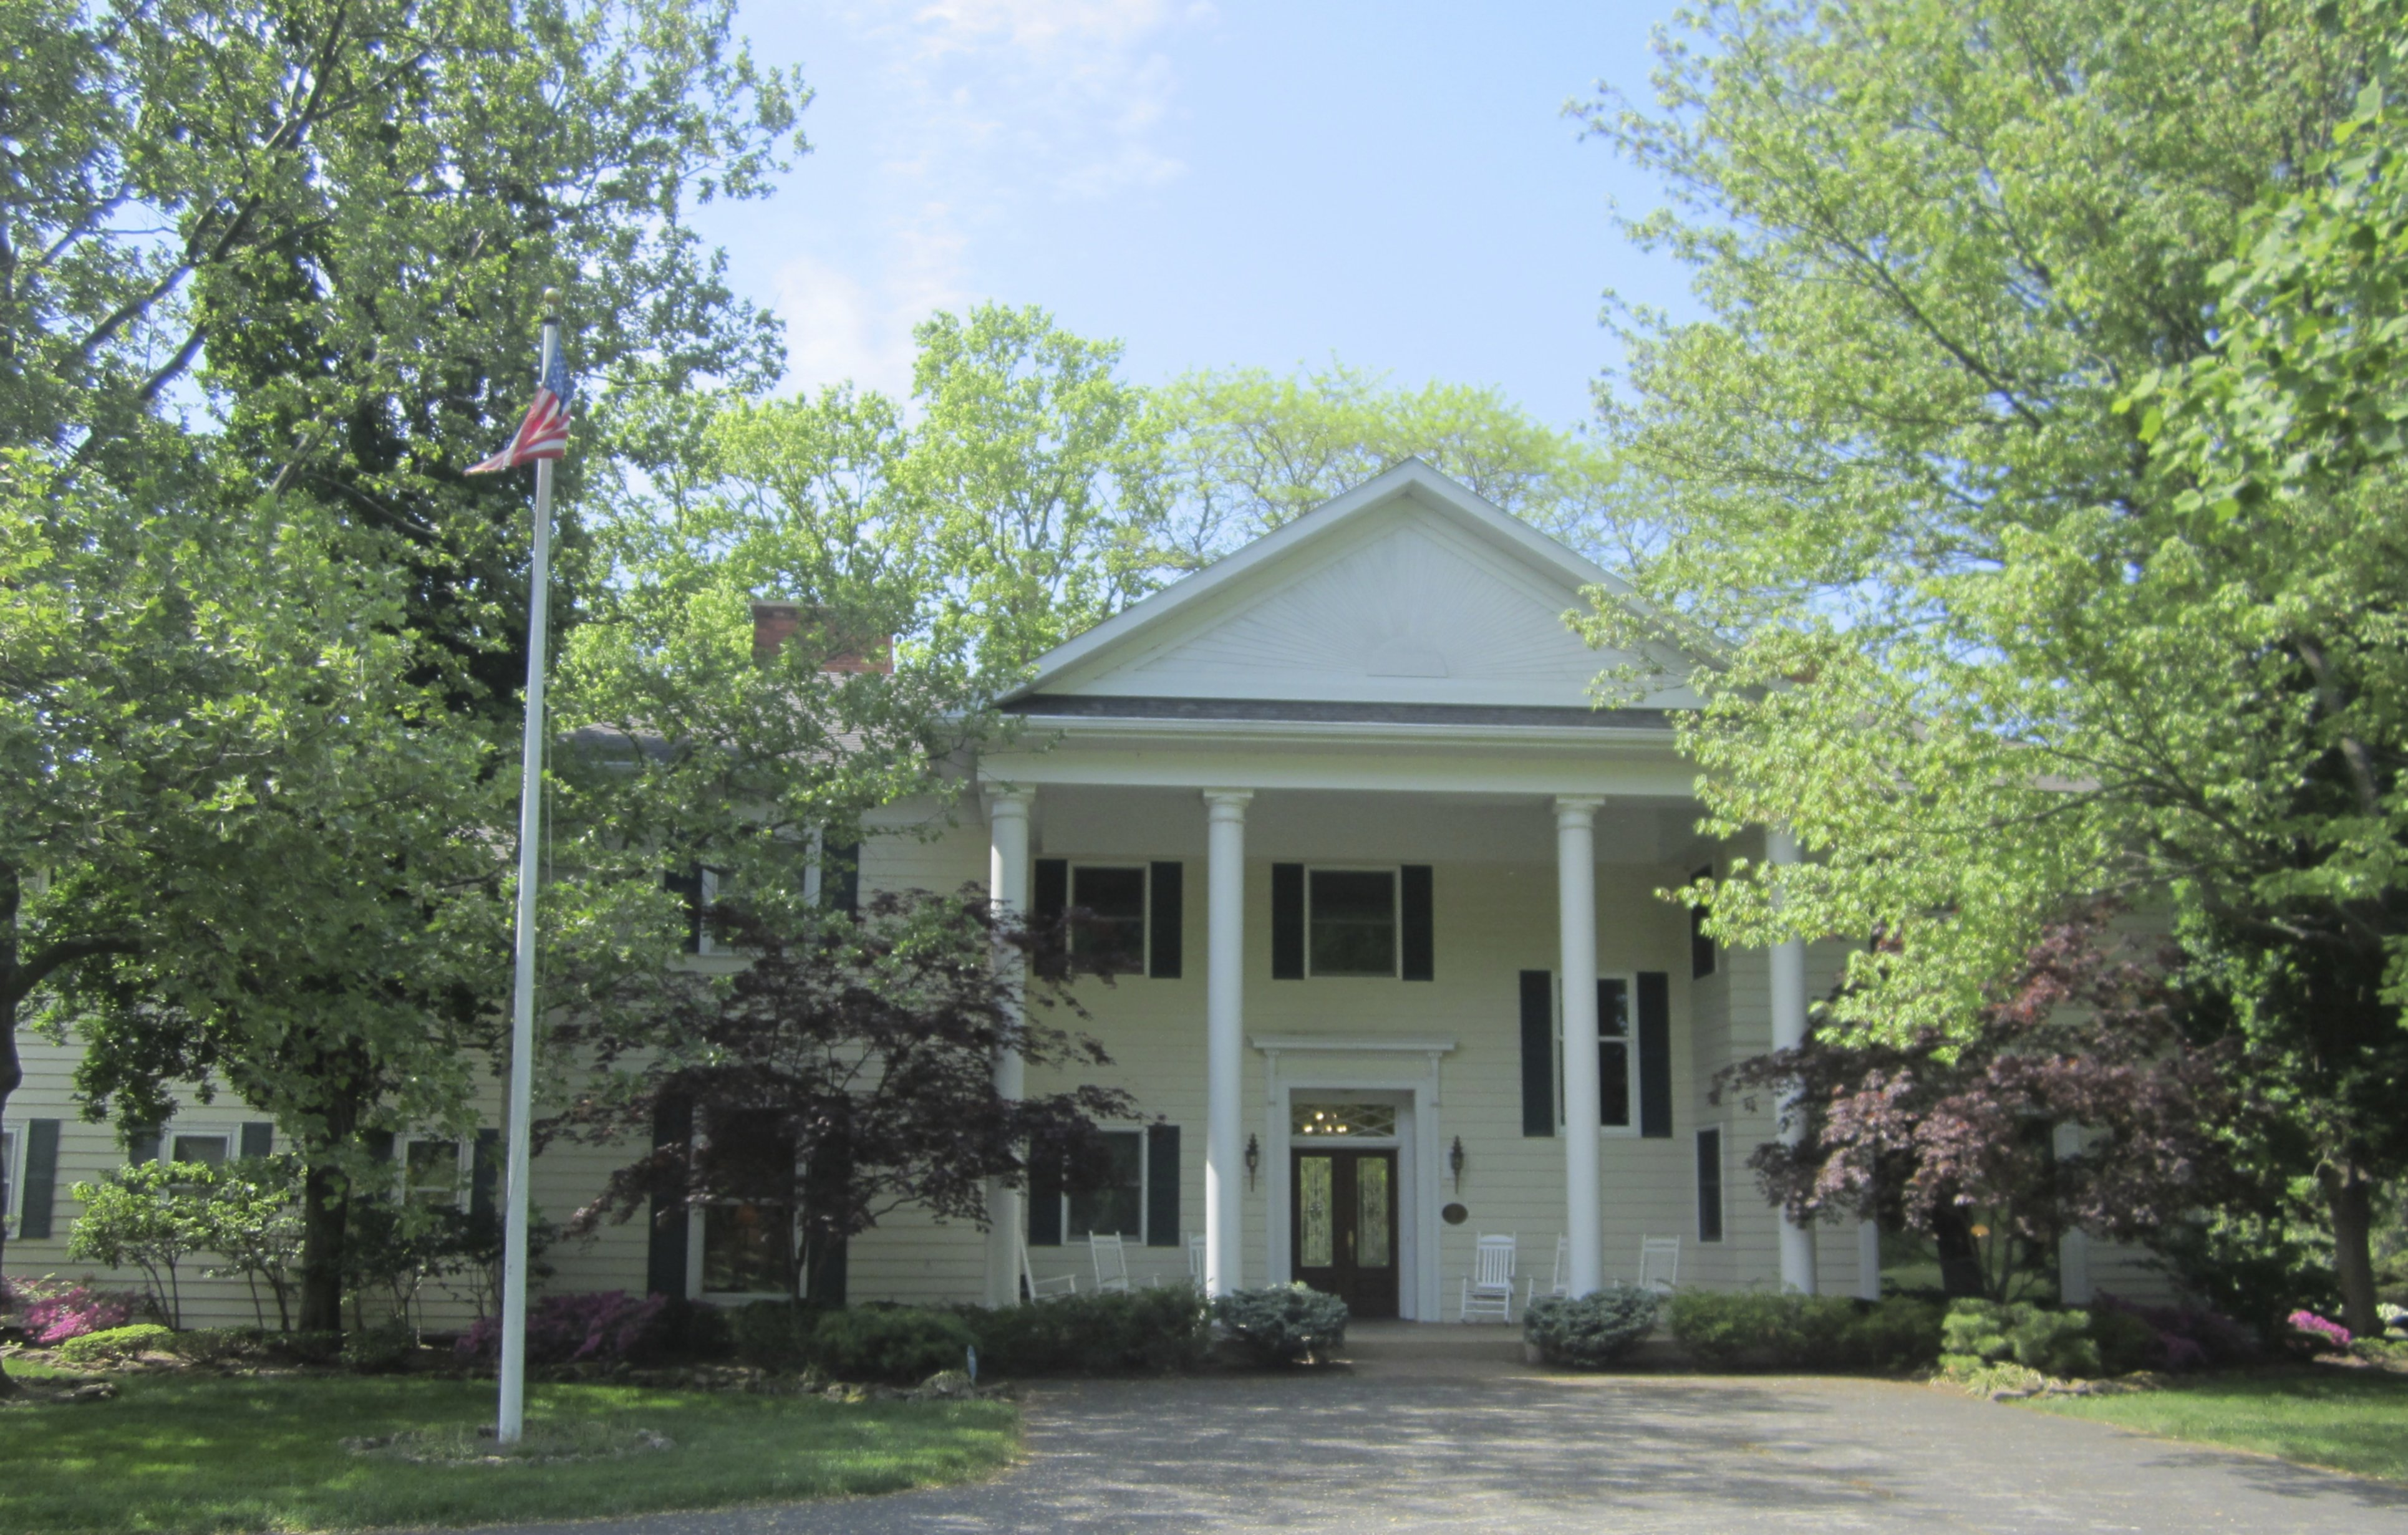 A tree in front of a house at Farrell House Lodge at Sunnybrook Trout Club.